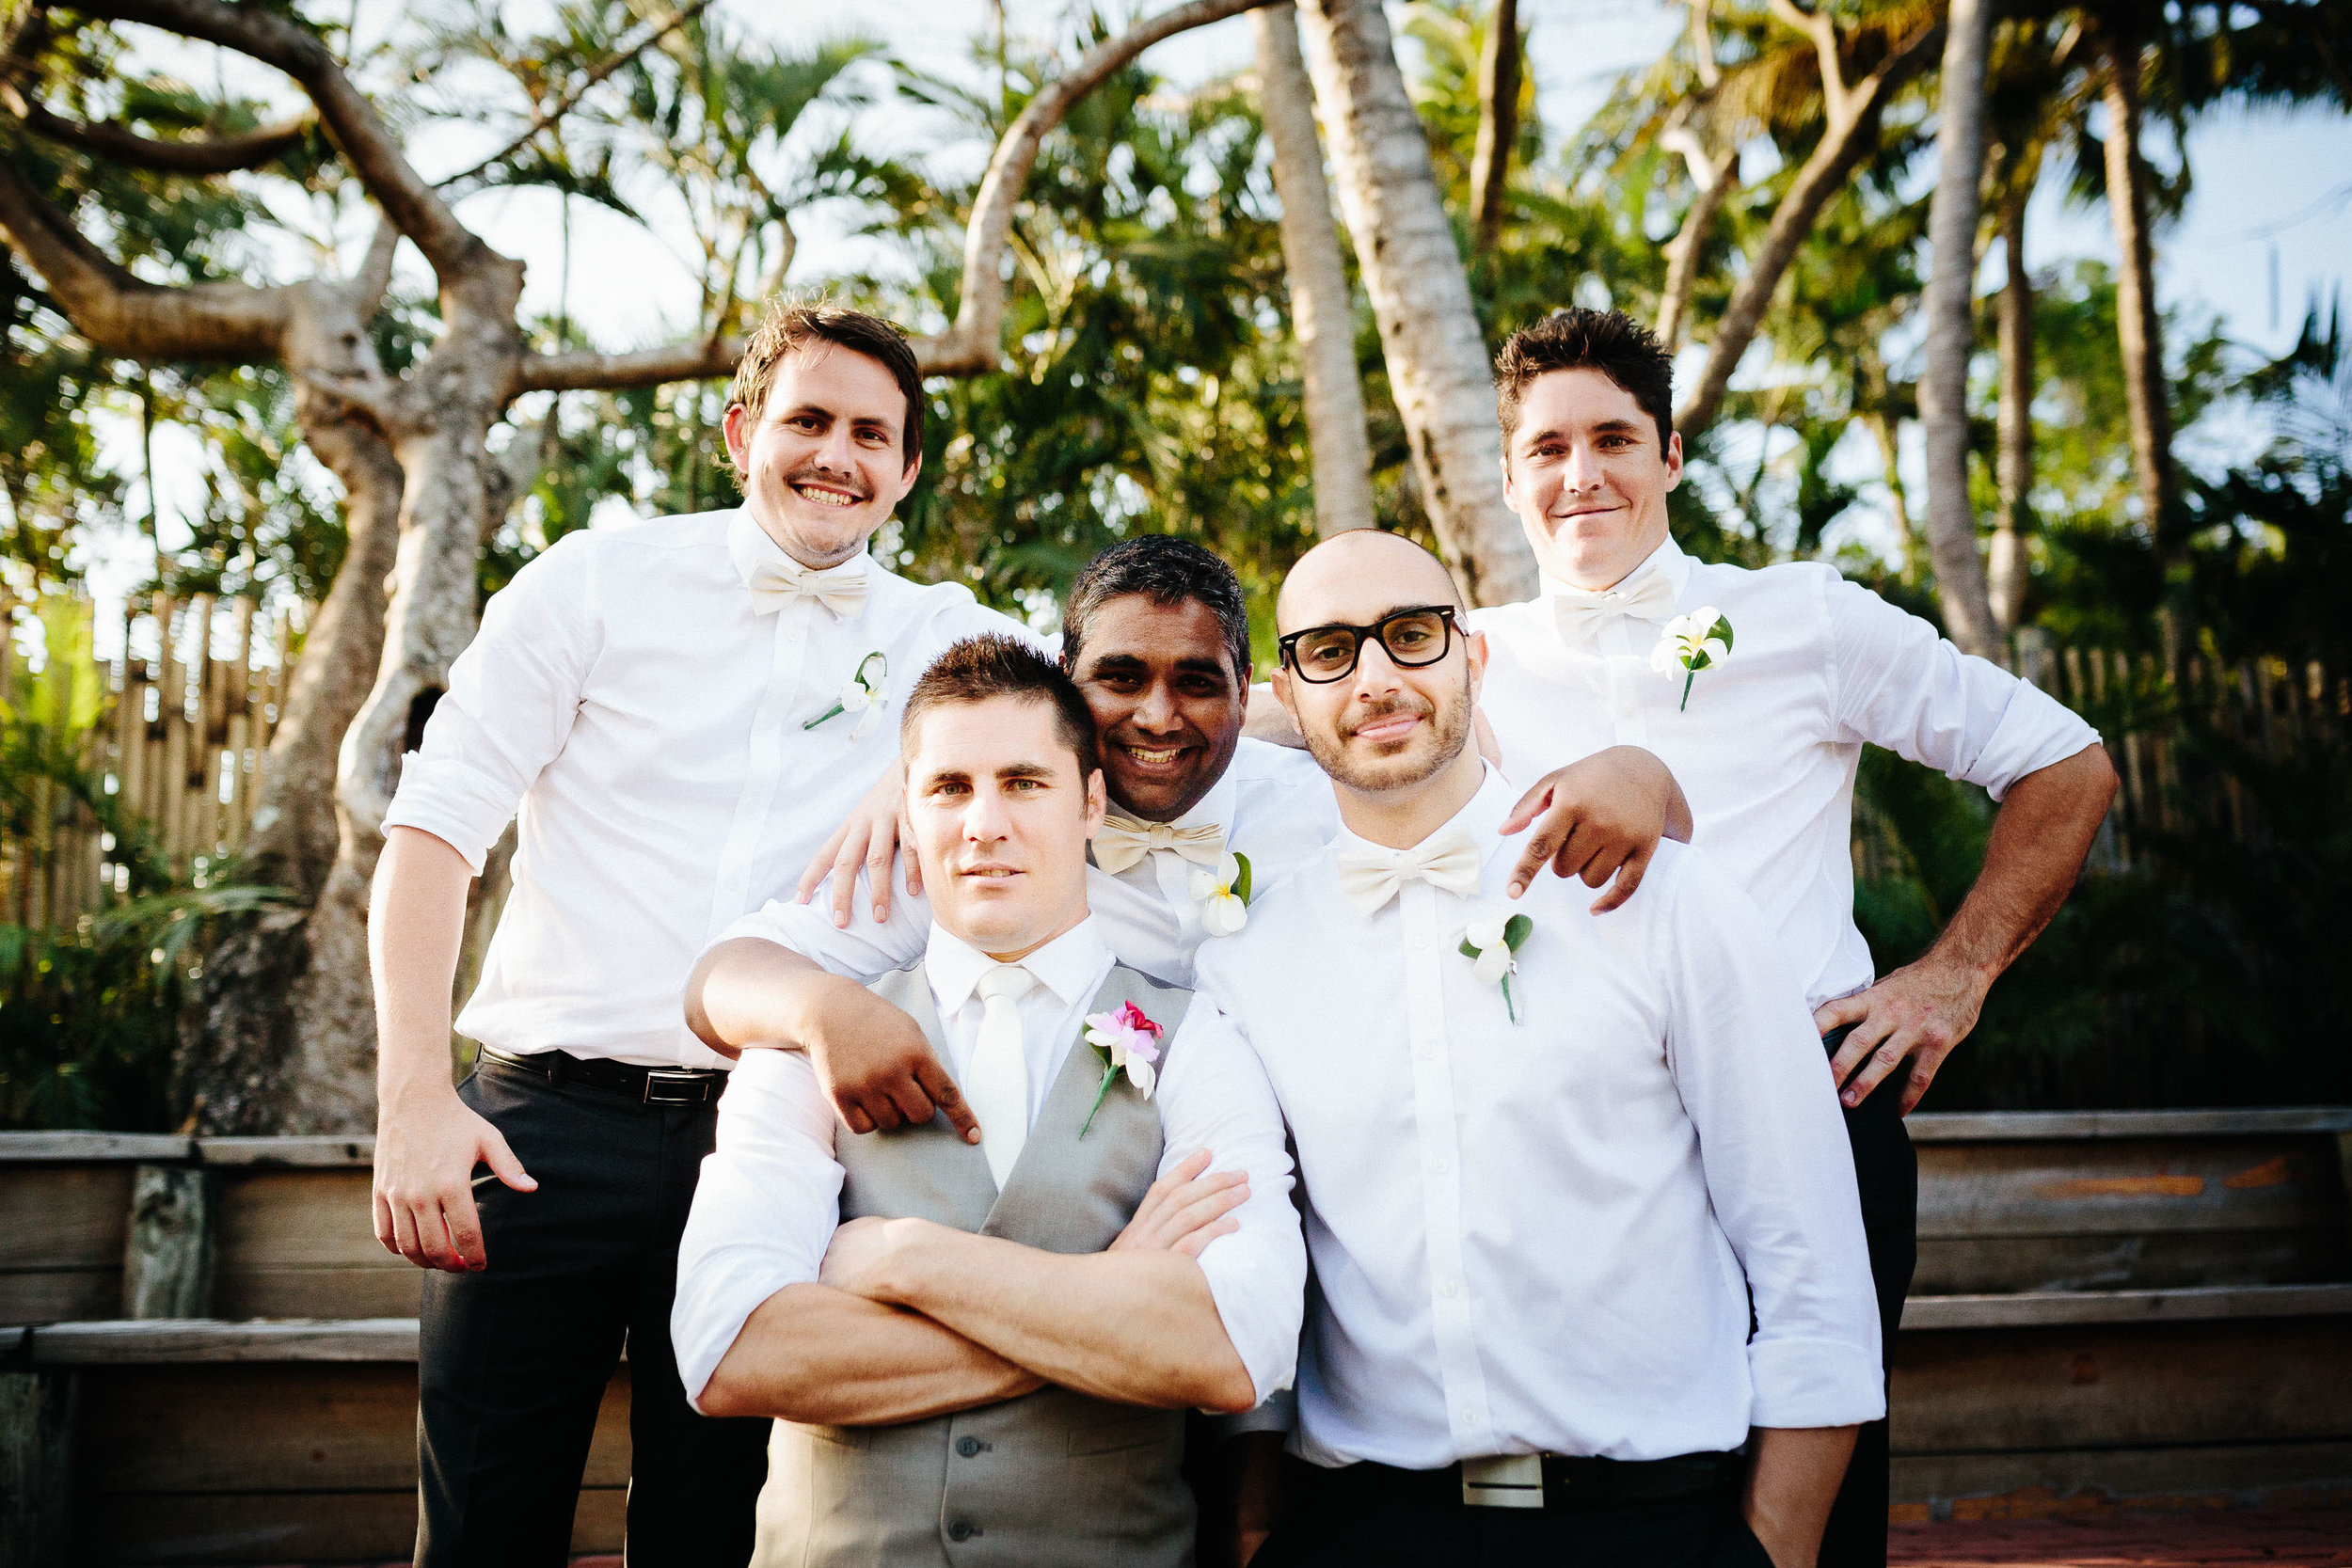 groom and groomsmen posing for a photo